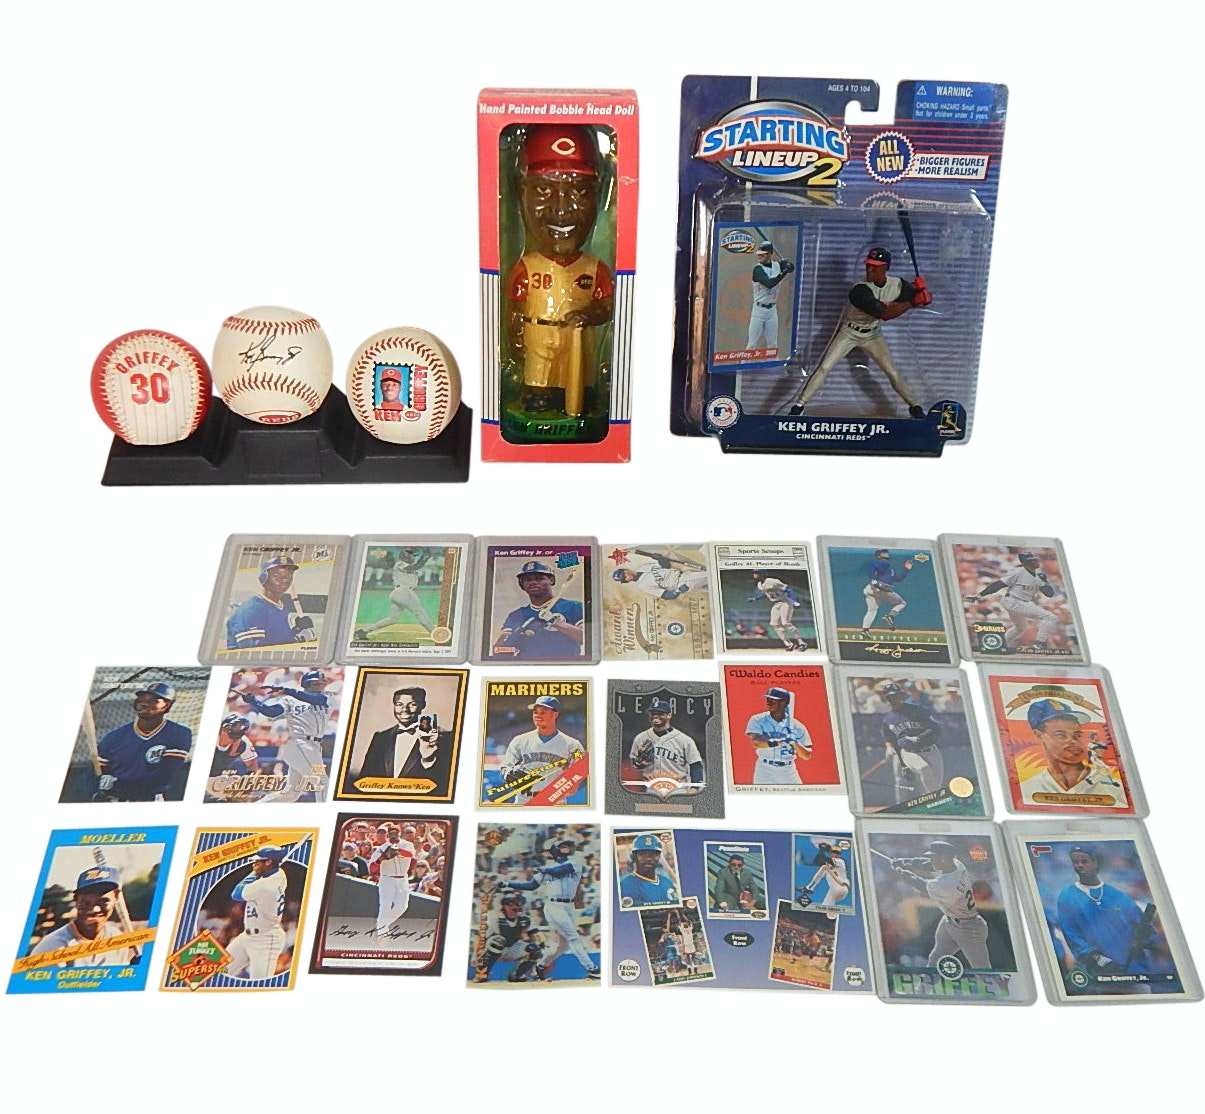 Ken Griffey Jr. Card and Memorabilia Collection